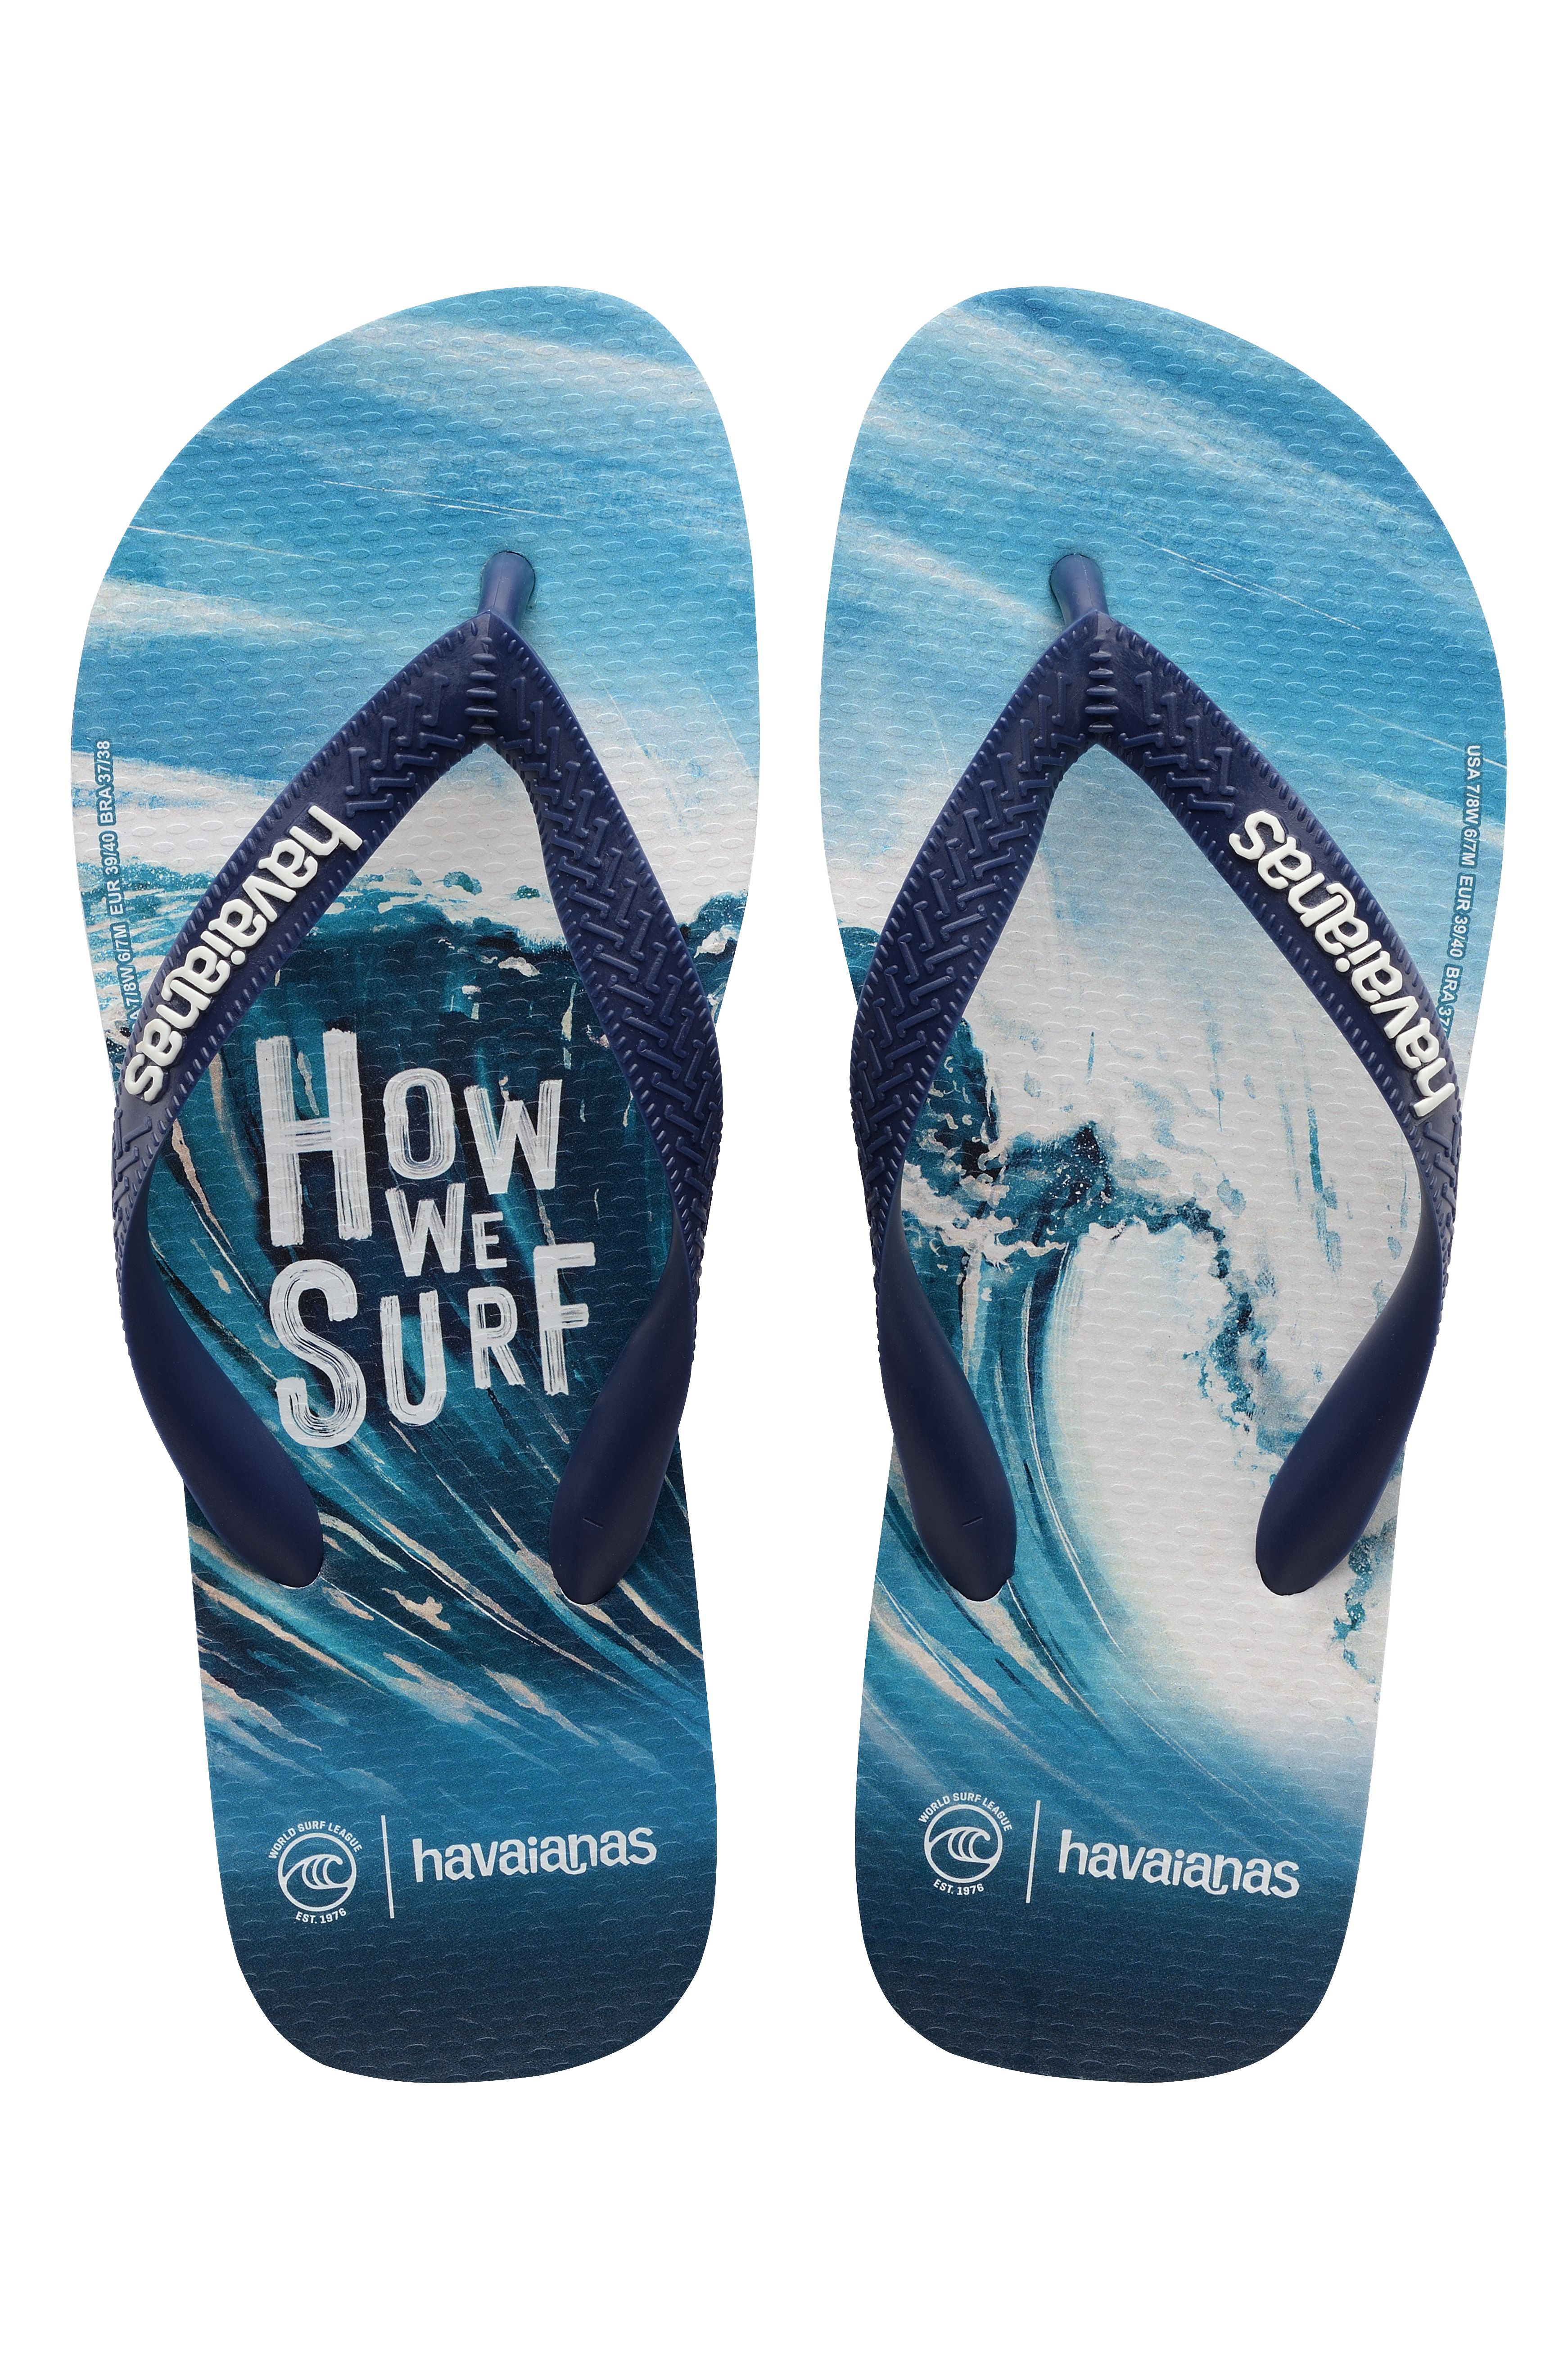 Chinelos Havaianas TOP WSL HOW WE SURF Navy Blue